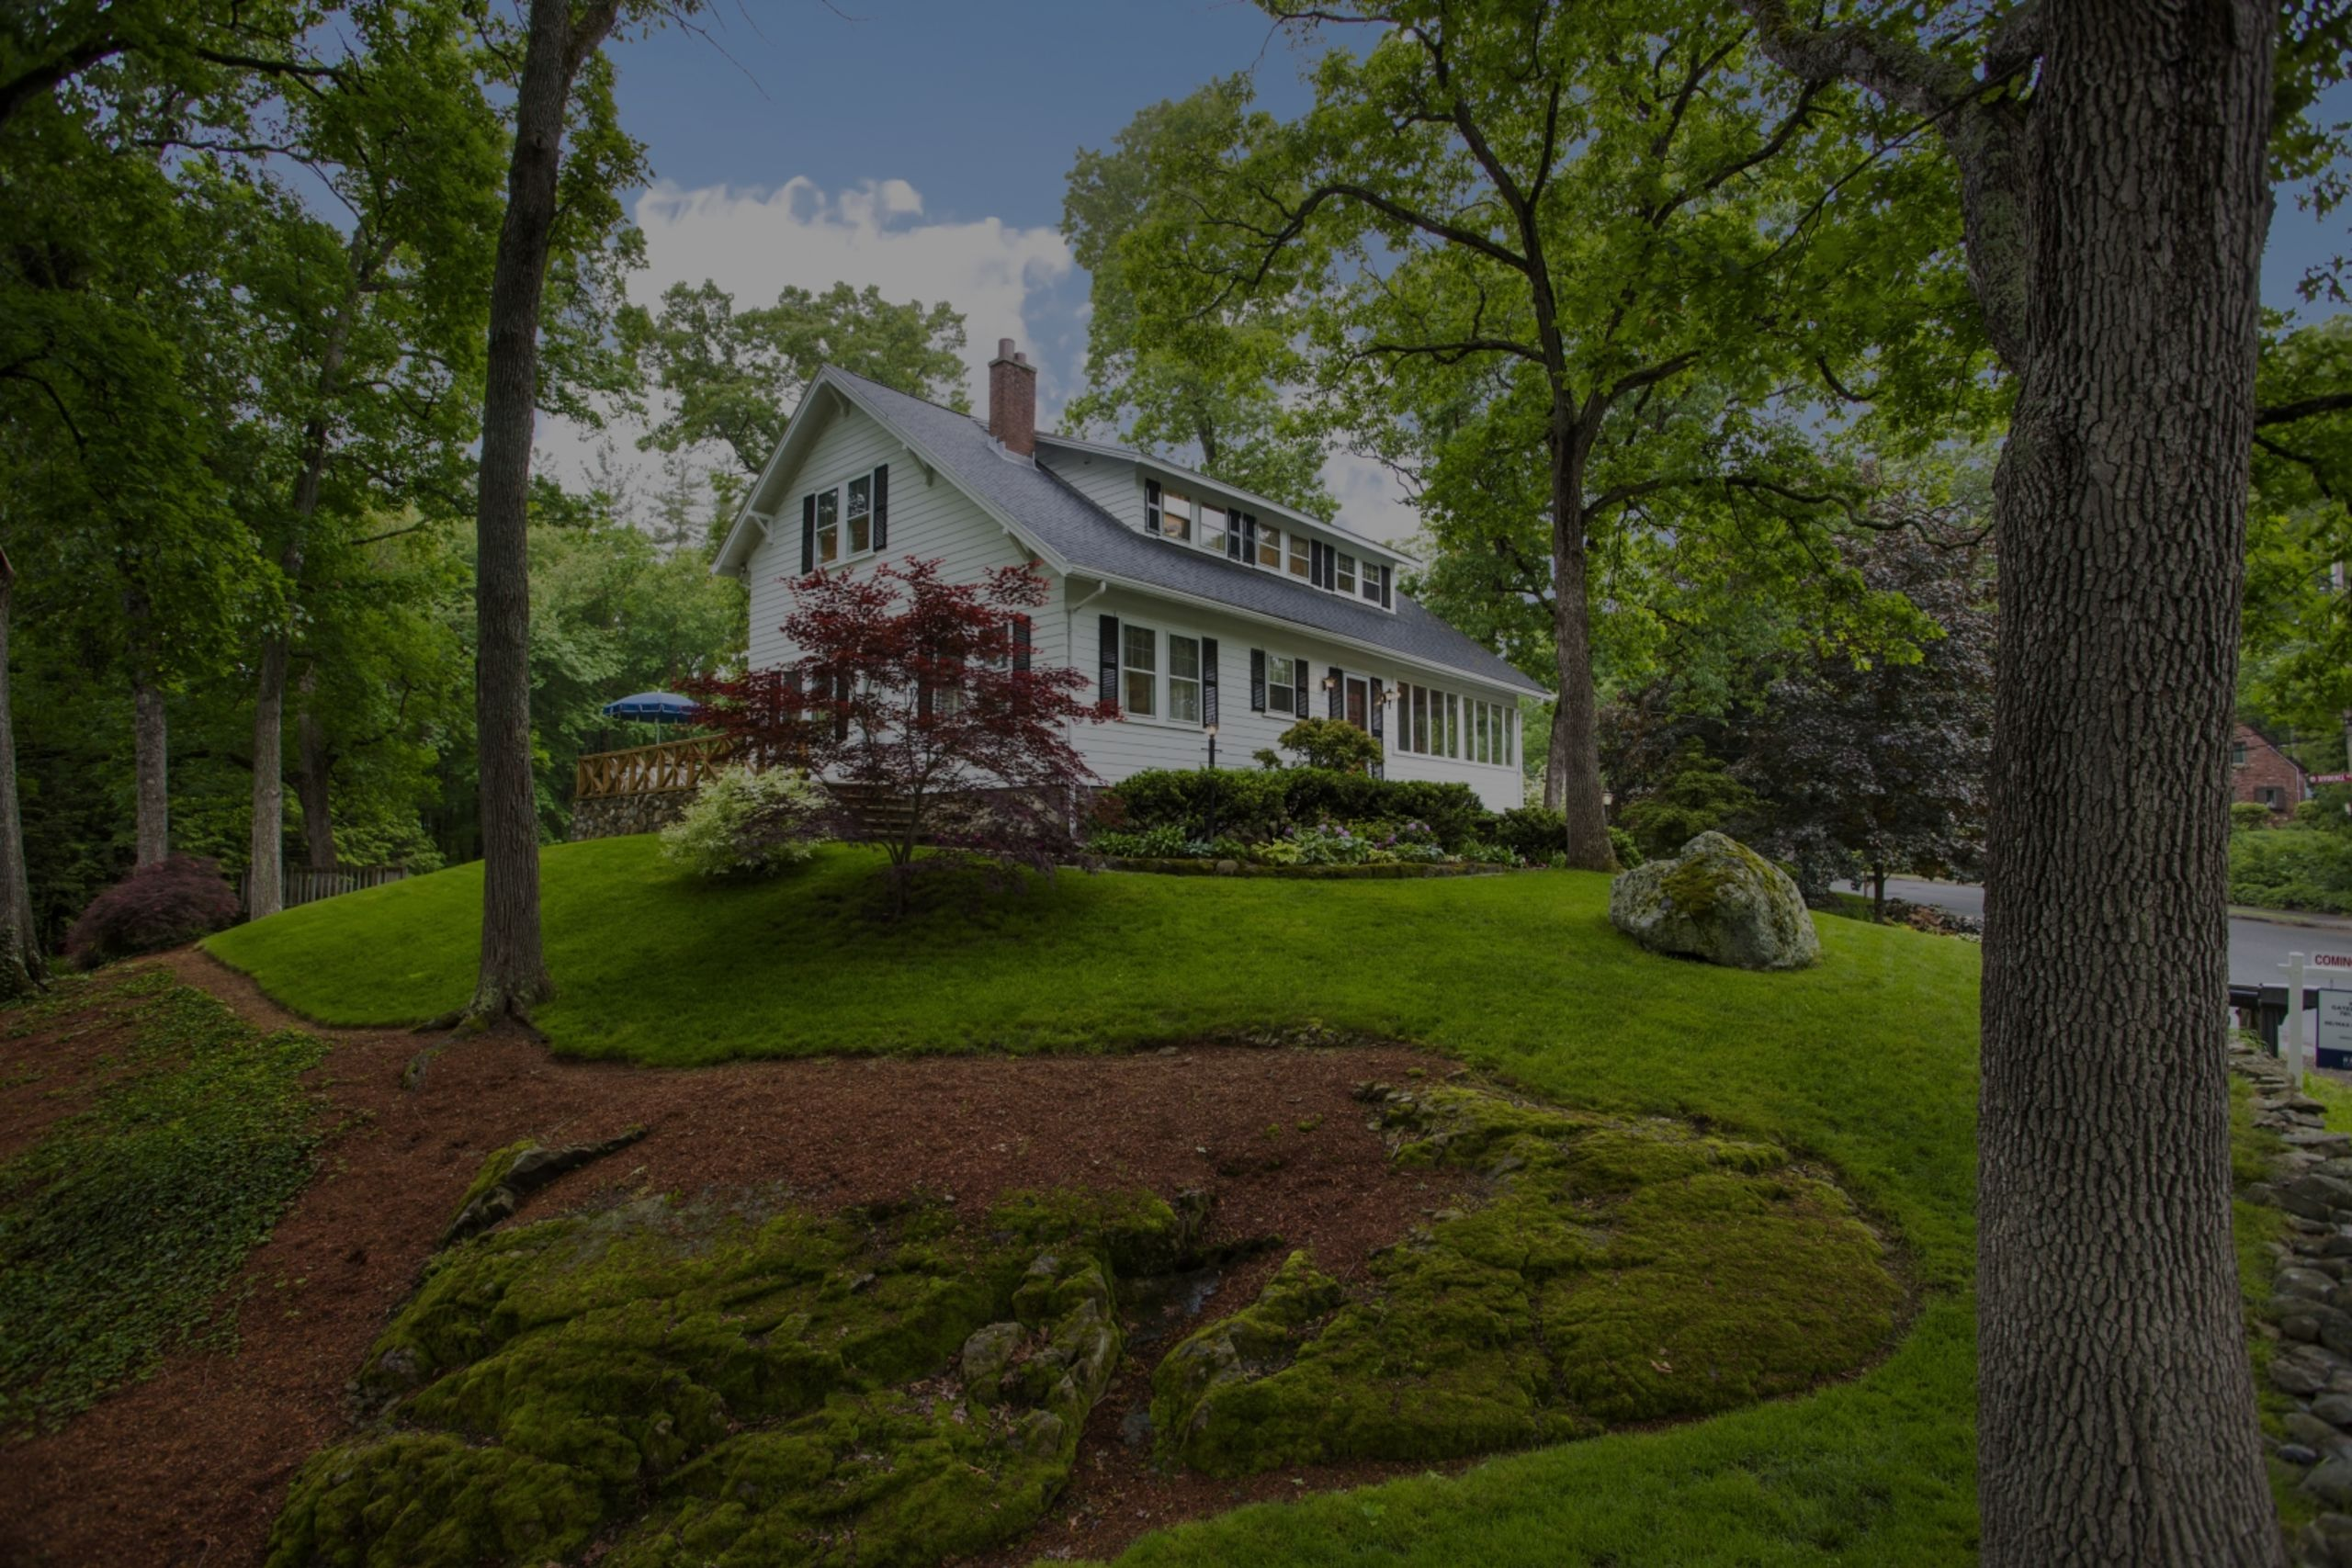 Home of the Week: 212 Franklin Street, Reading, MA 01867